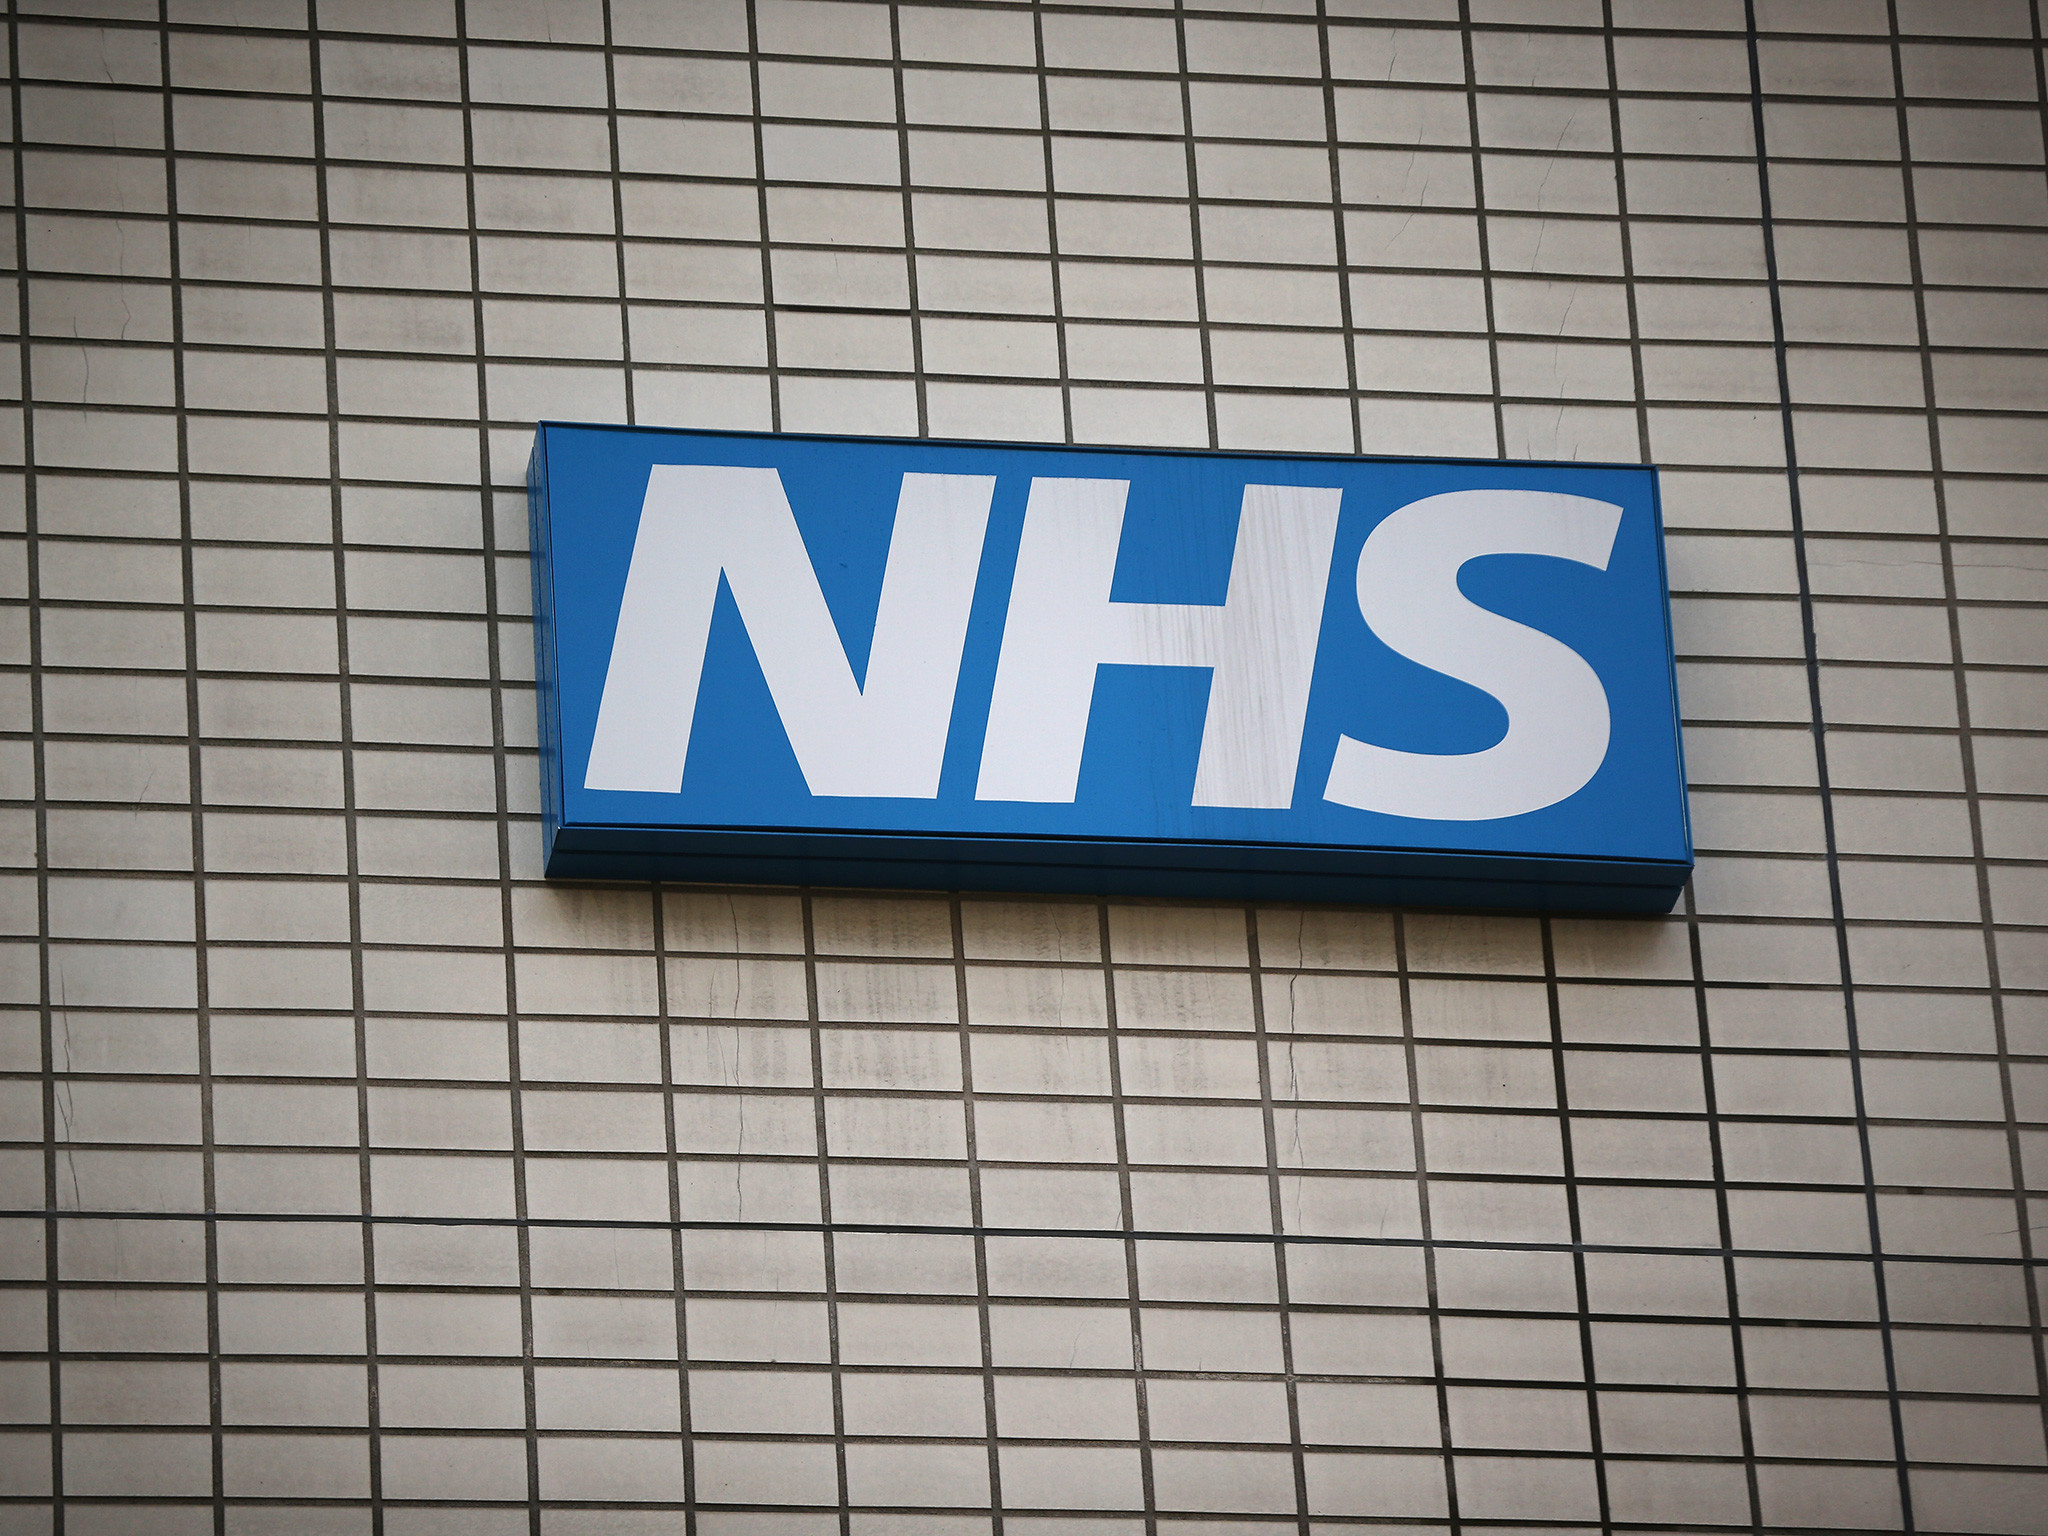 The NHS is not treating transgender people equally with other